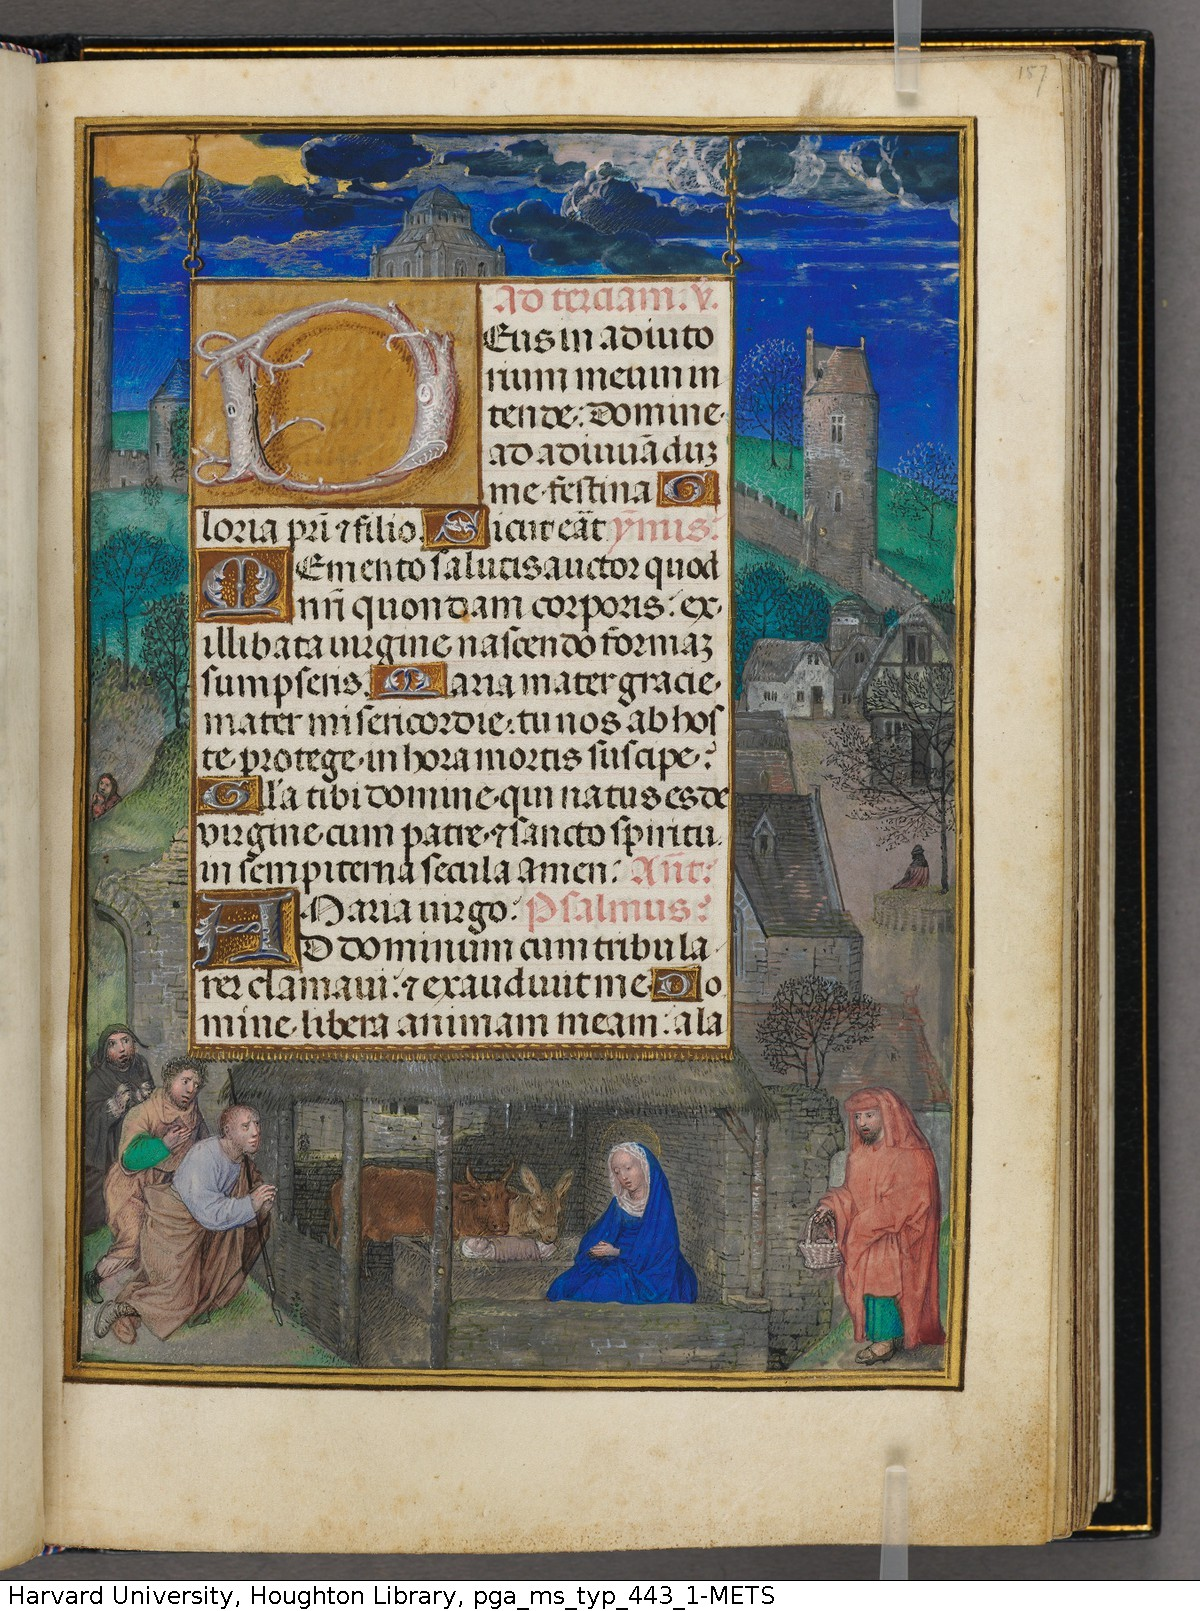 Emerson-White Hours use of Rome 1480 ca Harvard University, Houghton Library, MSS Typ 443.1 fol 157